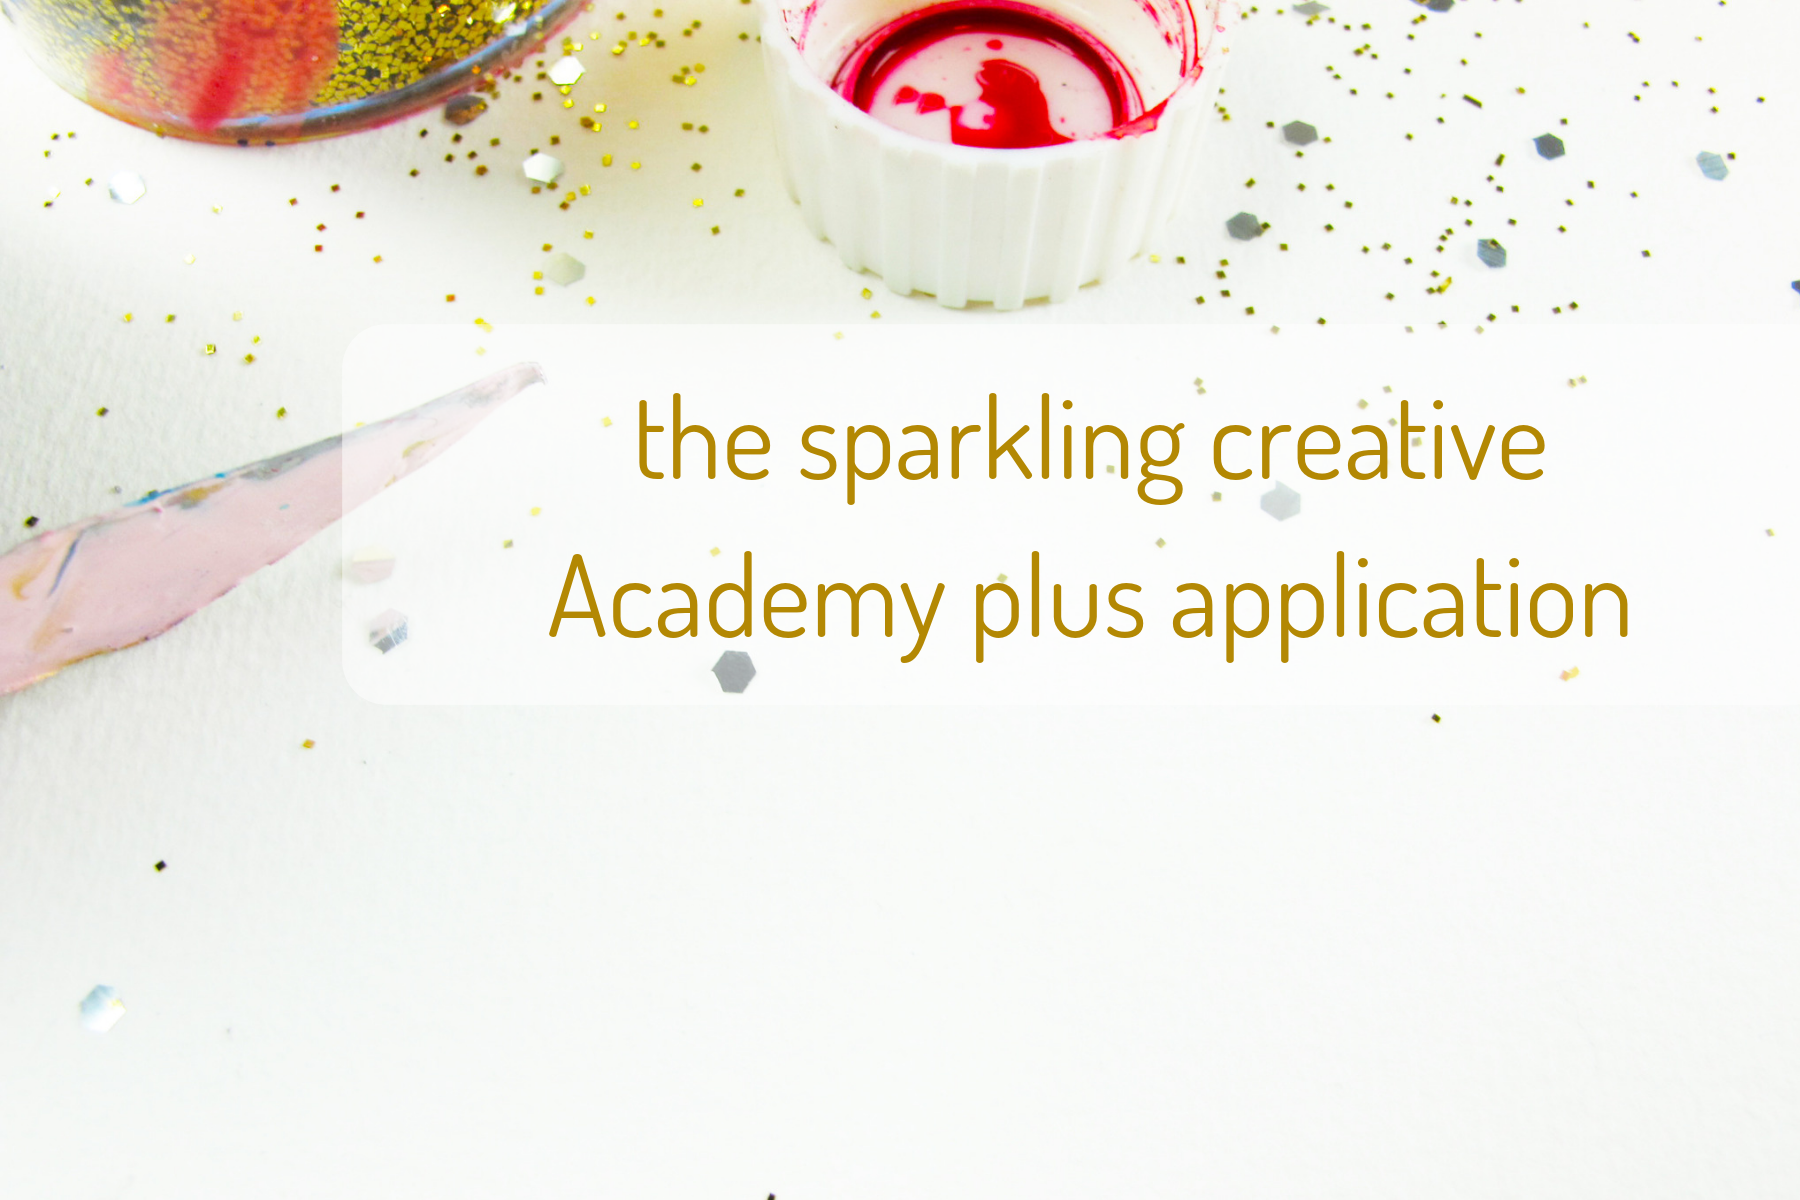 the sparkling creative Academy application, www.kerstinpressler.com/application